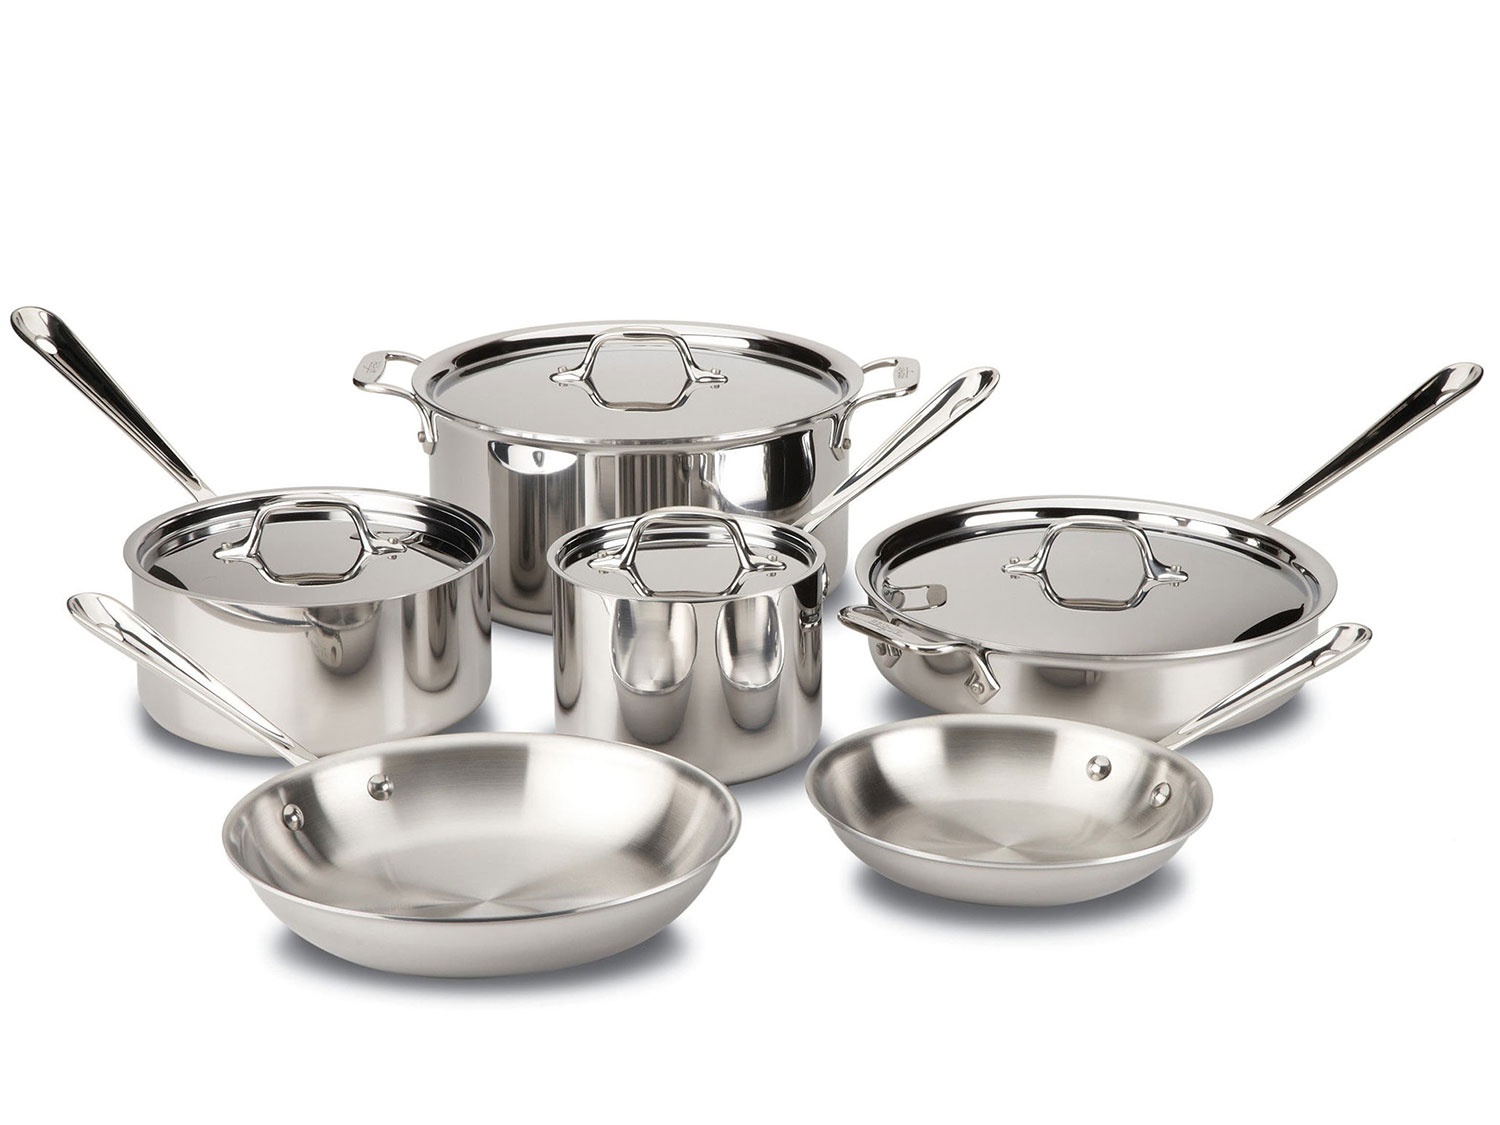 all-clad-10-piece-cookware-set.jpg